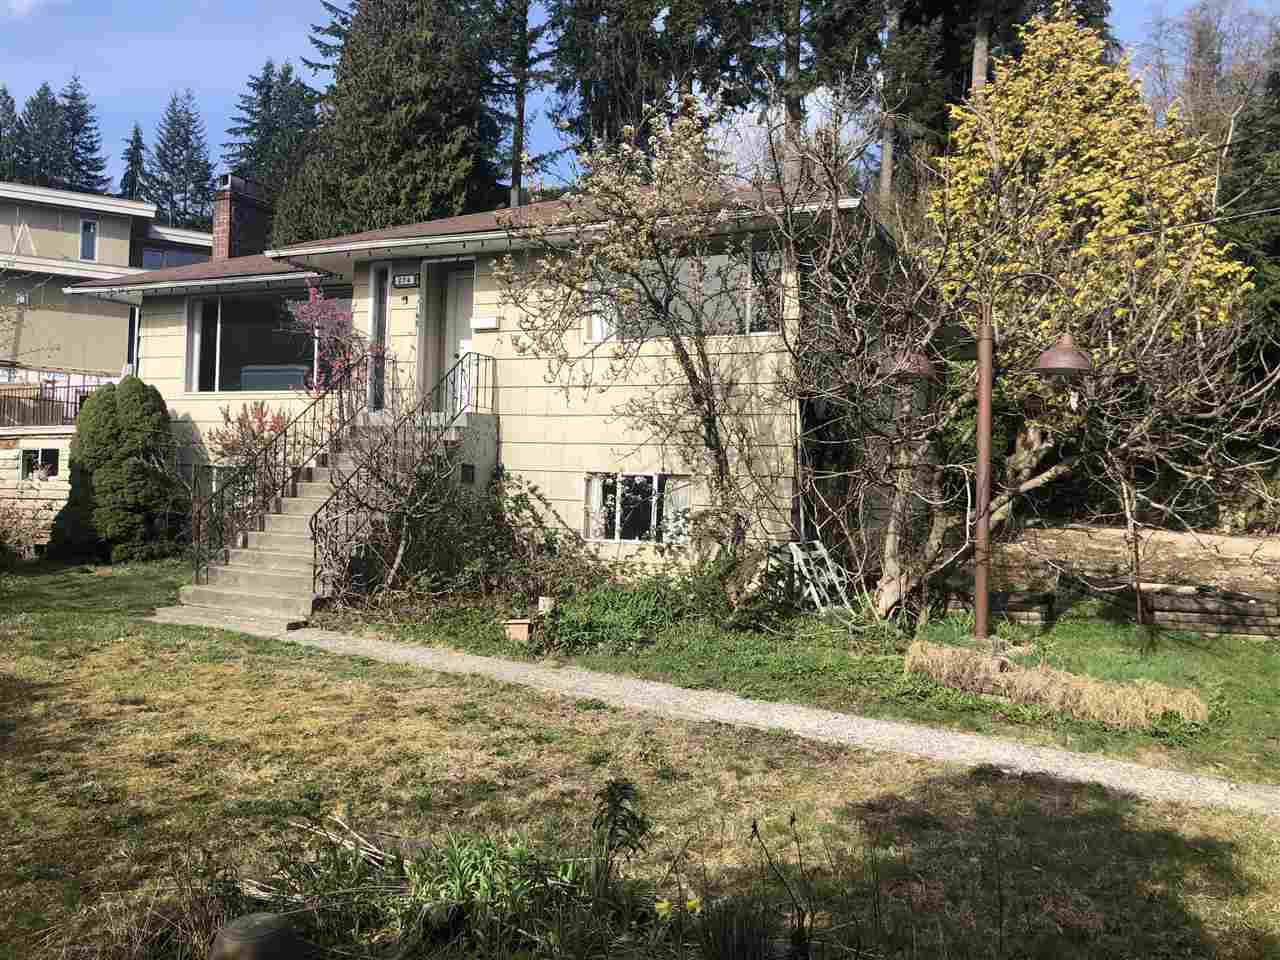 """Photo 2: Photos: 274 W ROCKLAND Road in North Vancouver: Upper Lonsdale House for sale in """"UPPER LONSDALE"""" : MLS®# R2360083"""